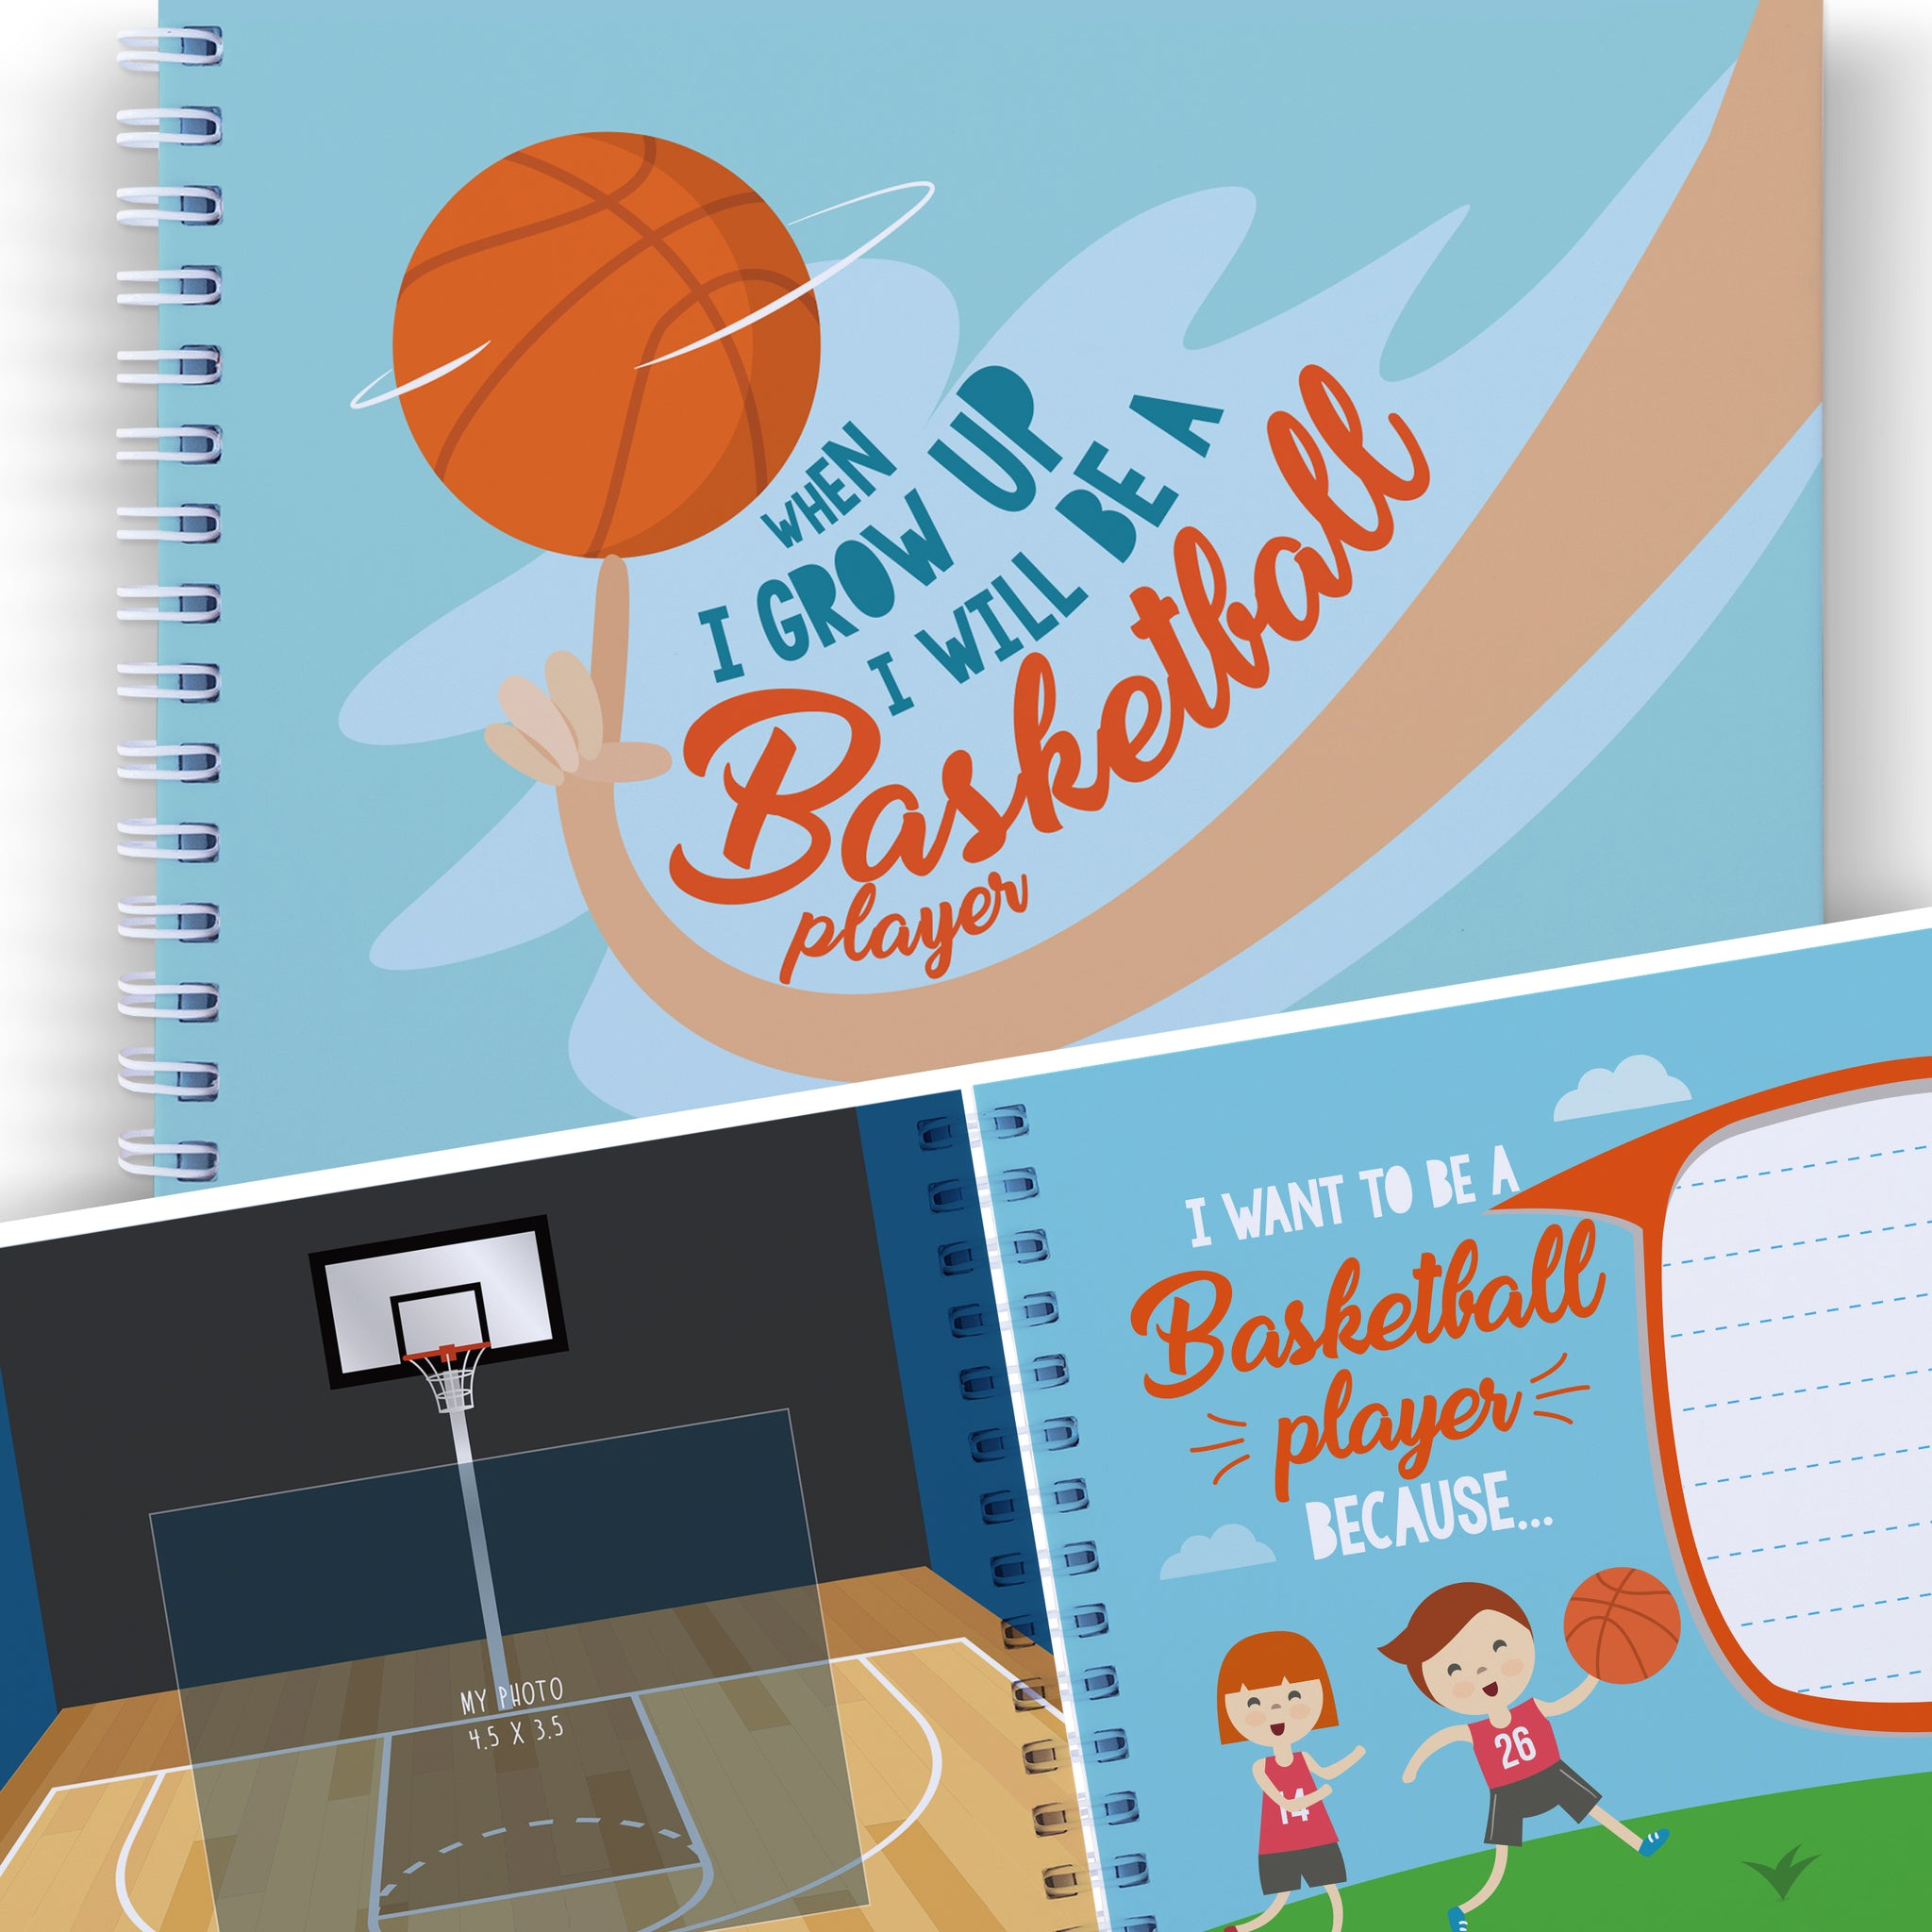 WHEN I GROW UP I WILL BE A BASKETBALL PLAYER - Kids Journal, Gifts for Boys and Girls, Toddler Presents, Art Activity for Children.